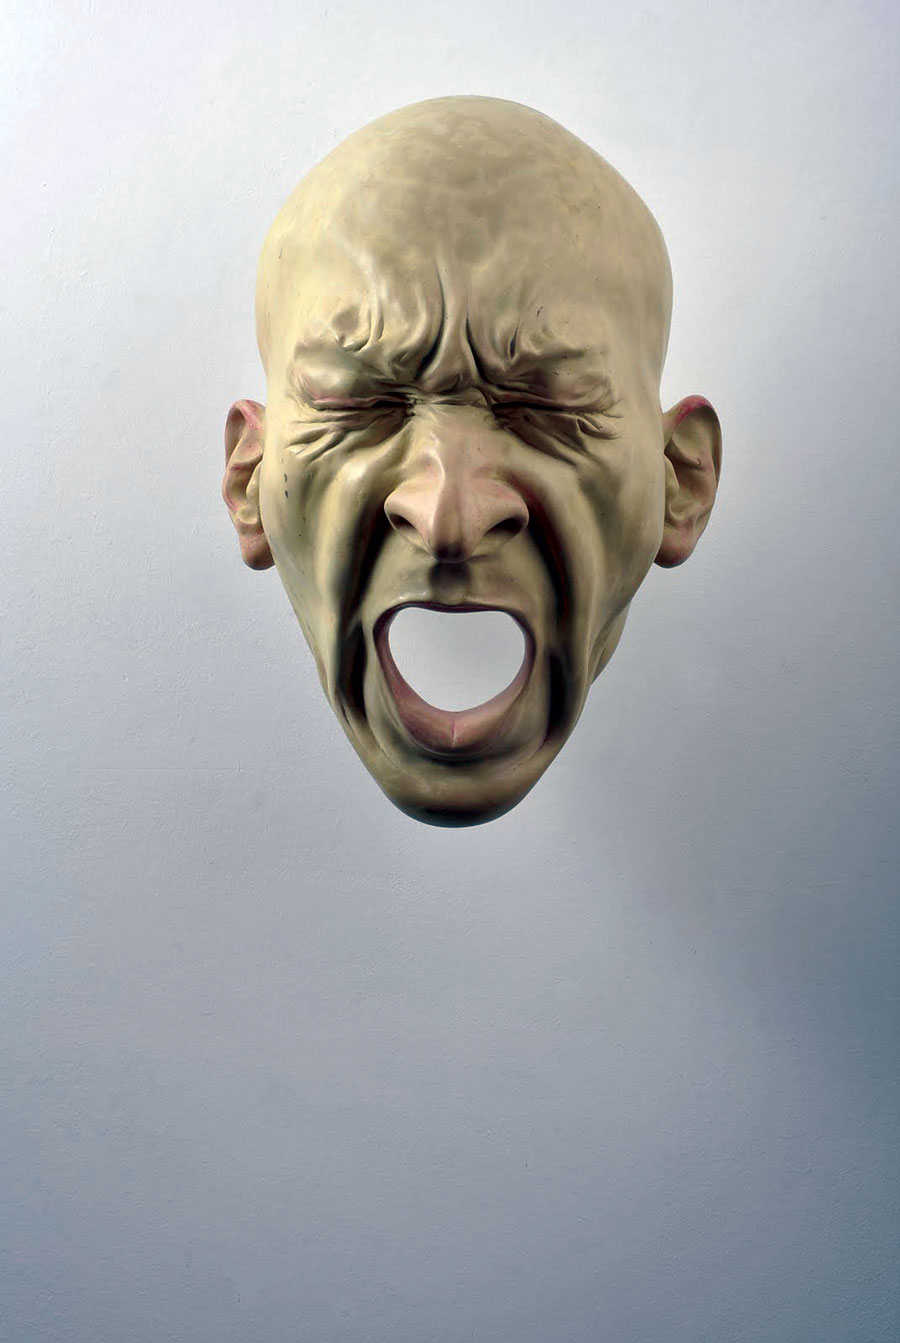 Bogdan Rața - Scream, polyester, synthetic resin, metal, paint, 2008, 57x46x34 cm, courtesy Slag Gallery / Photocredit: Andrei Jecza